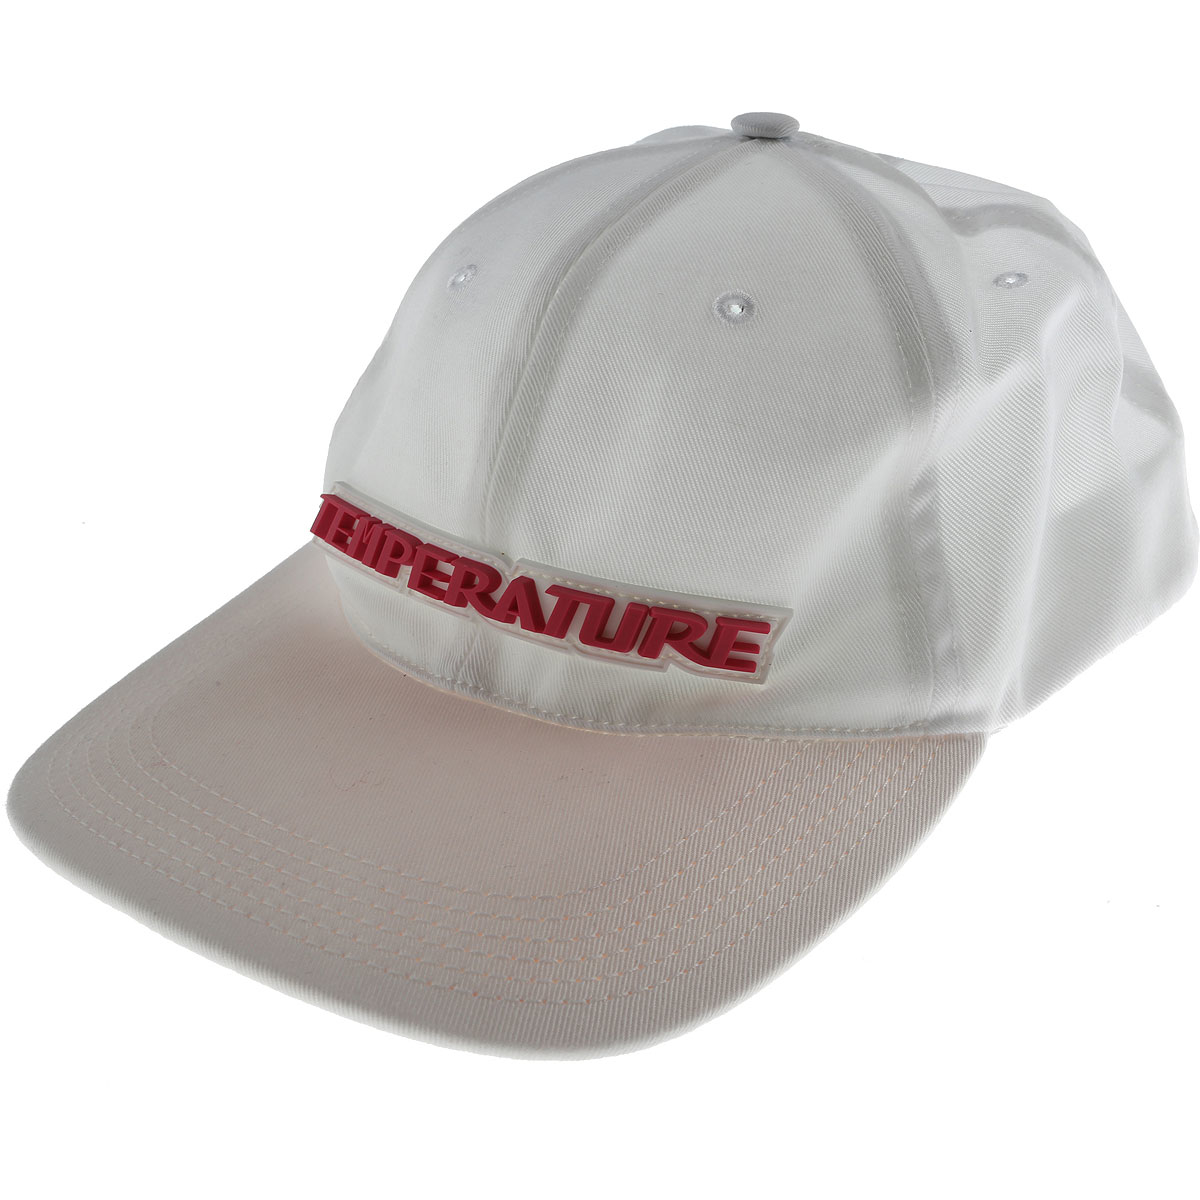 Off-White Virgil Abloh Hat for Women On Sale in Outlet White - GOOFASH